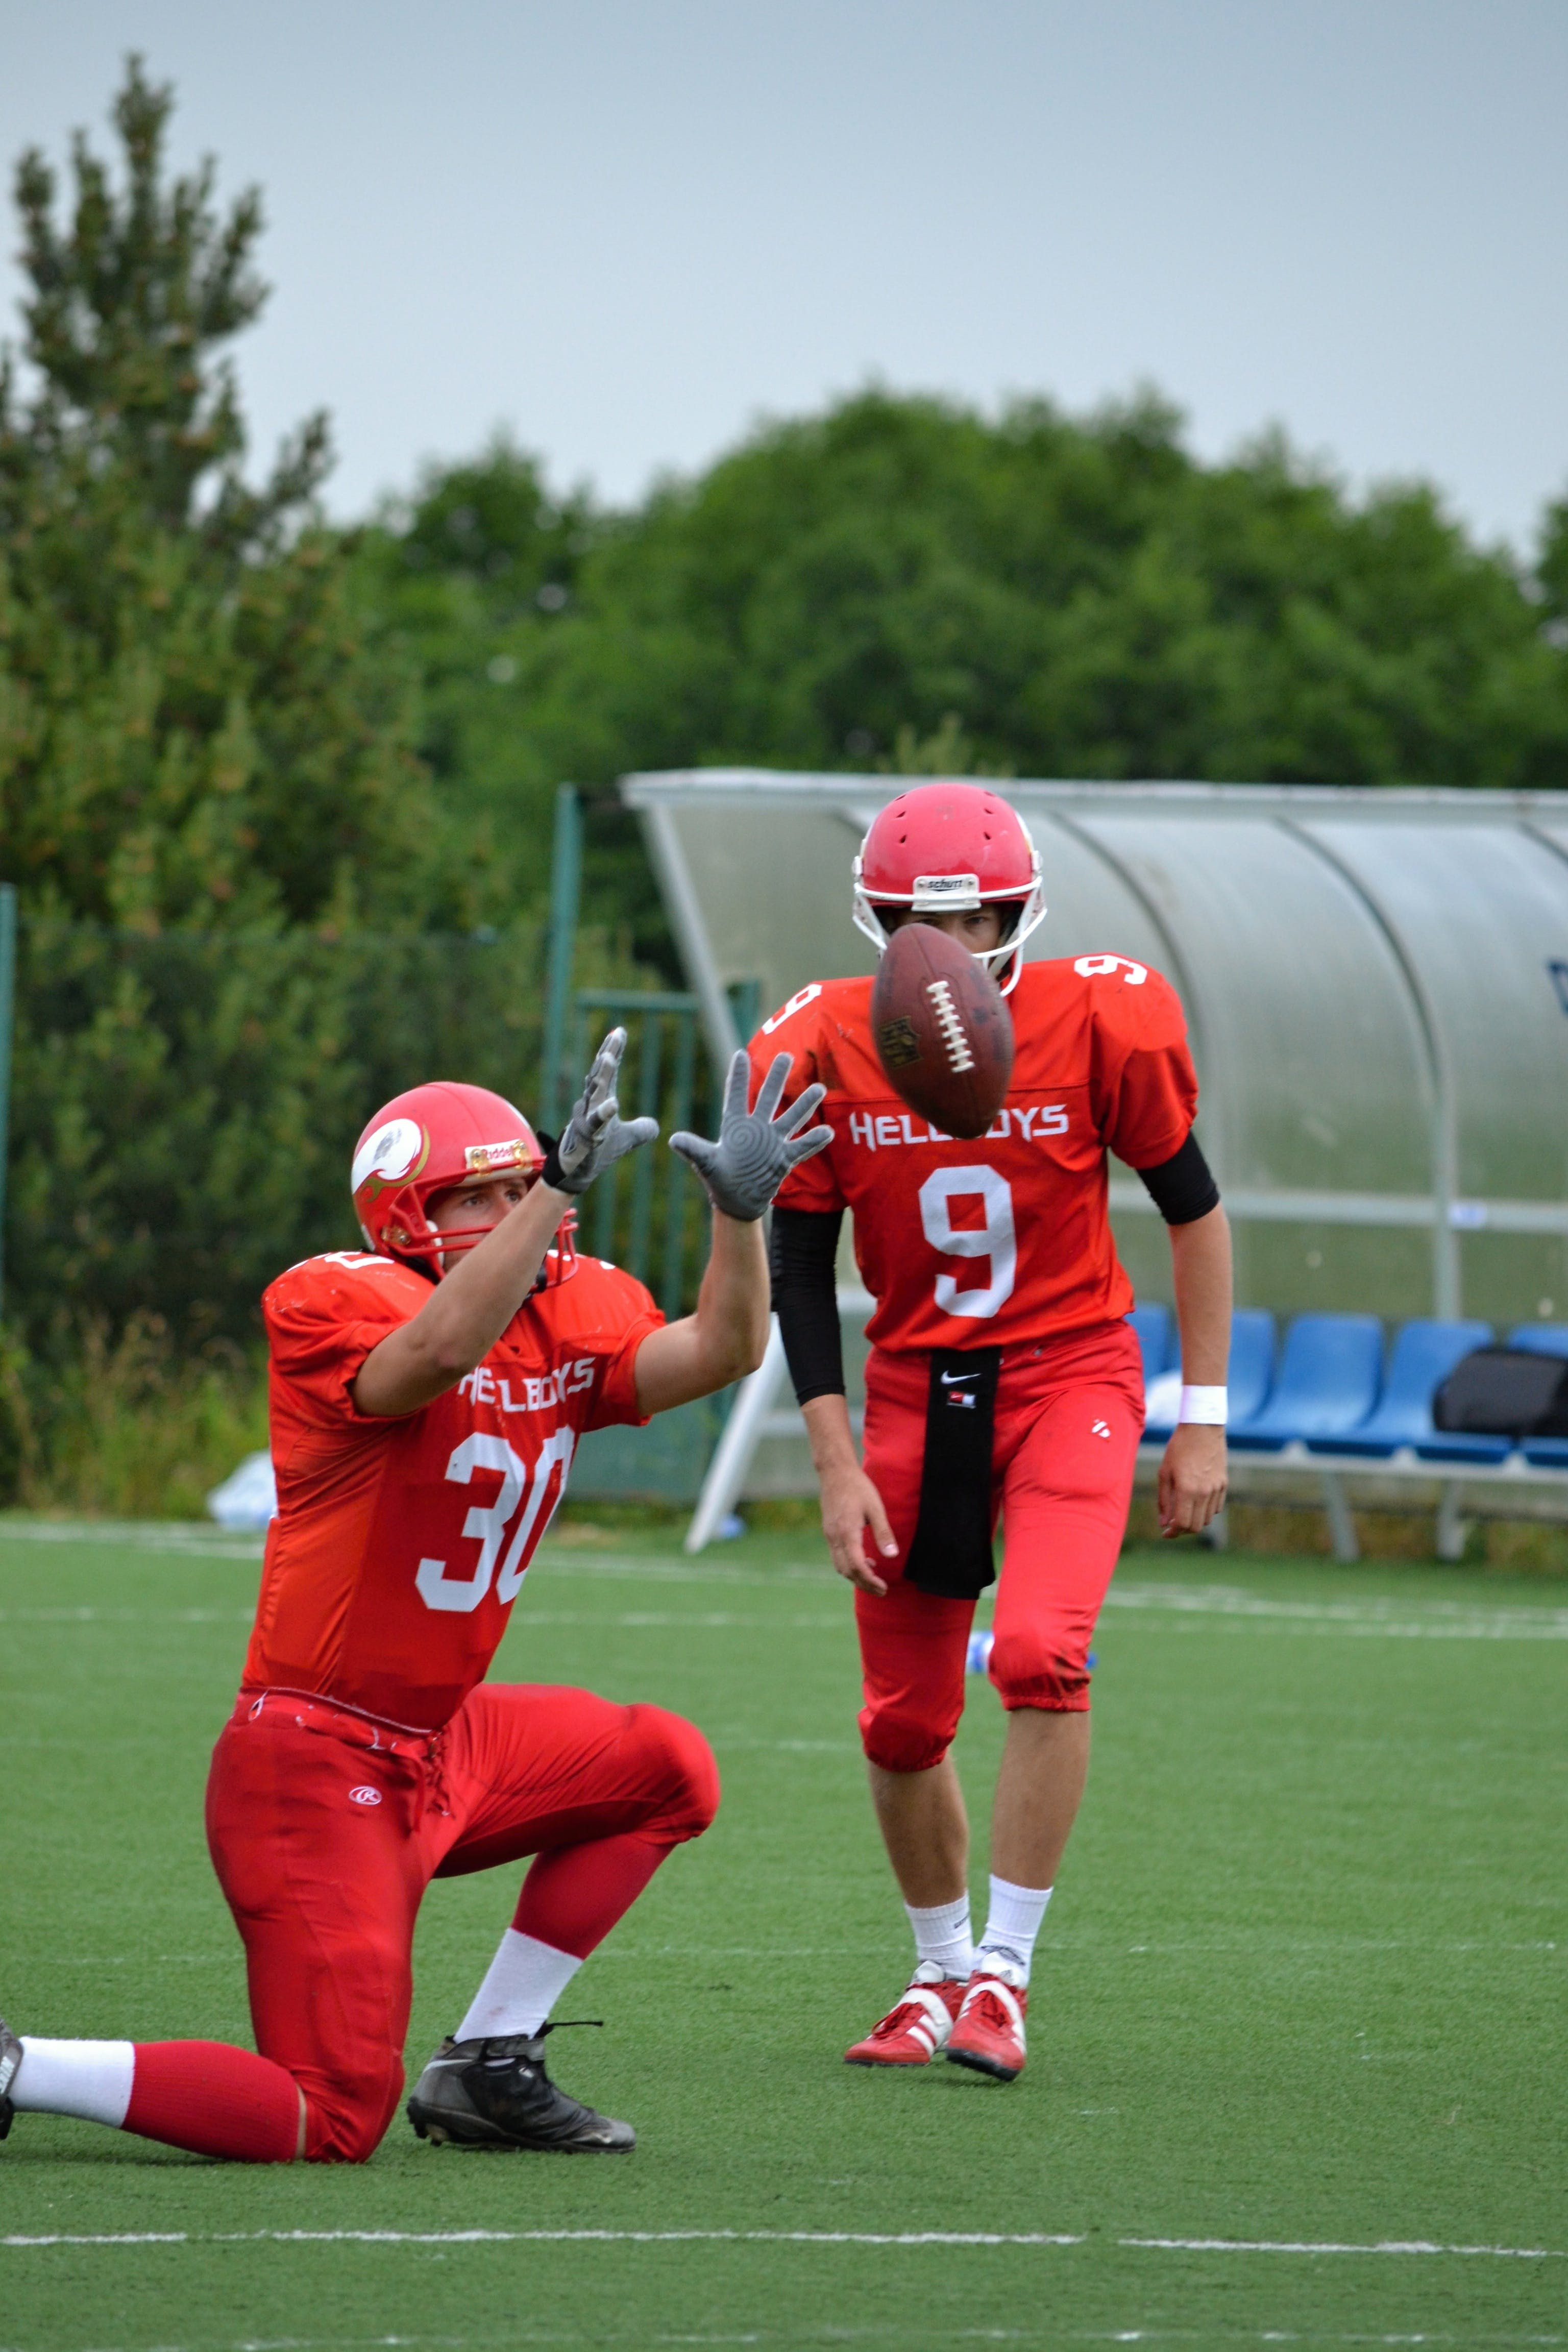 Free stock photo of American football, contact game, cooperation, determination